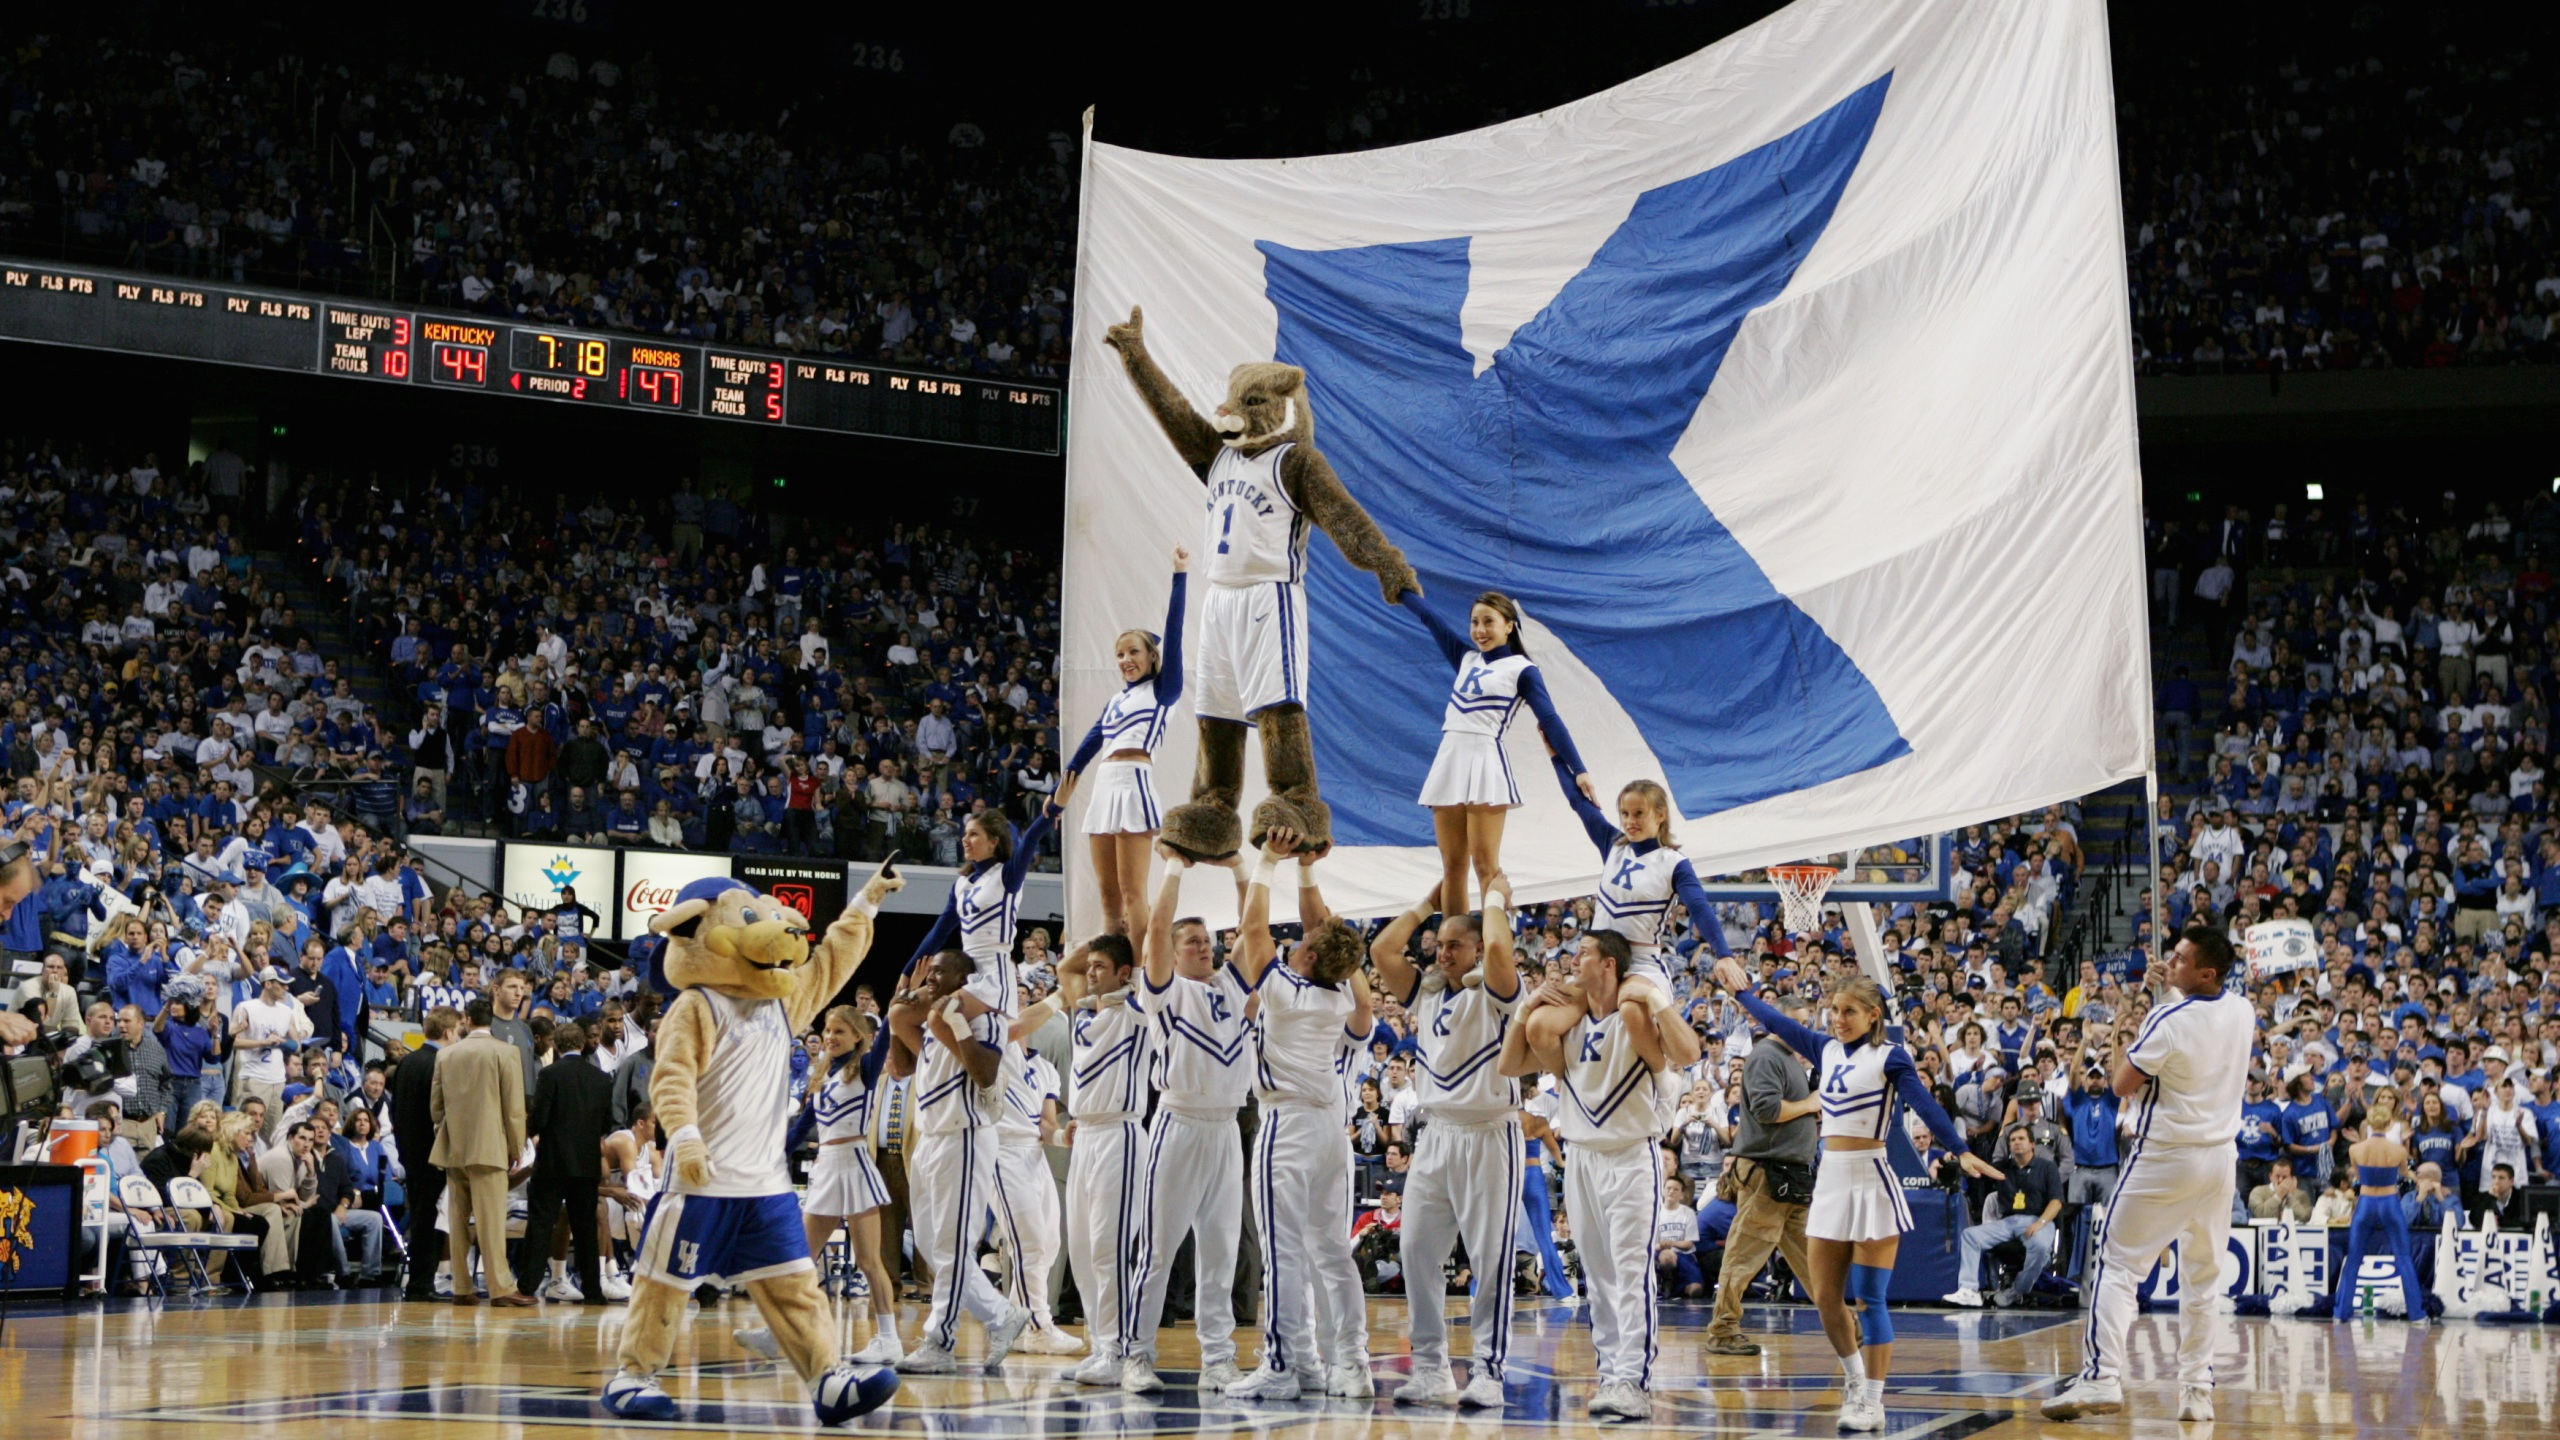 The mascots and cheerleaders of the Kentucky Wildcats build a pyramid during the game against the Kansas Jayhawks on January 9, 2005 at Rupp Arena in Lexington, Kentucky. (Andy Lyons/Getty Images)